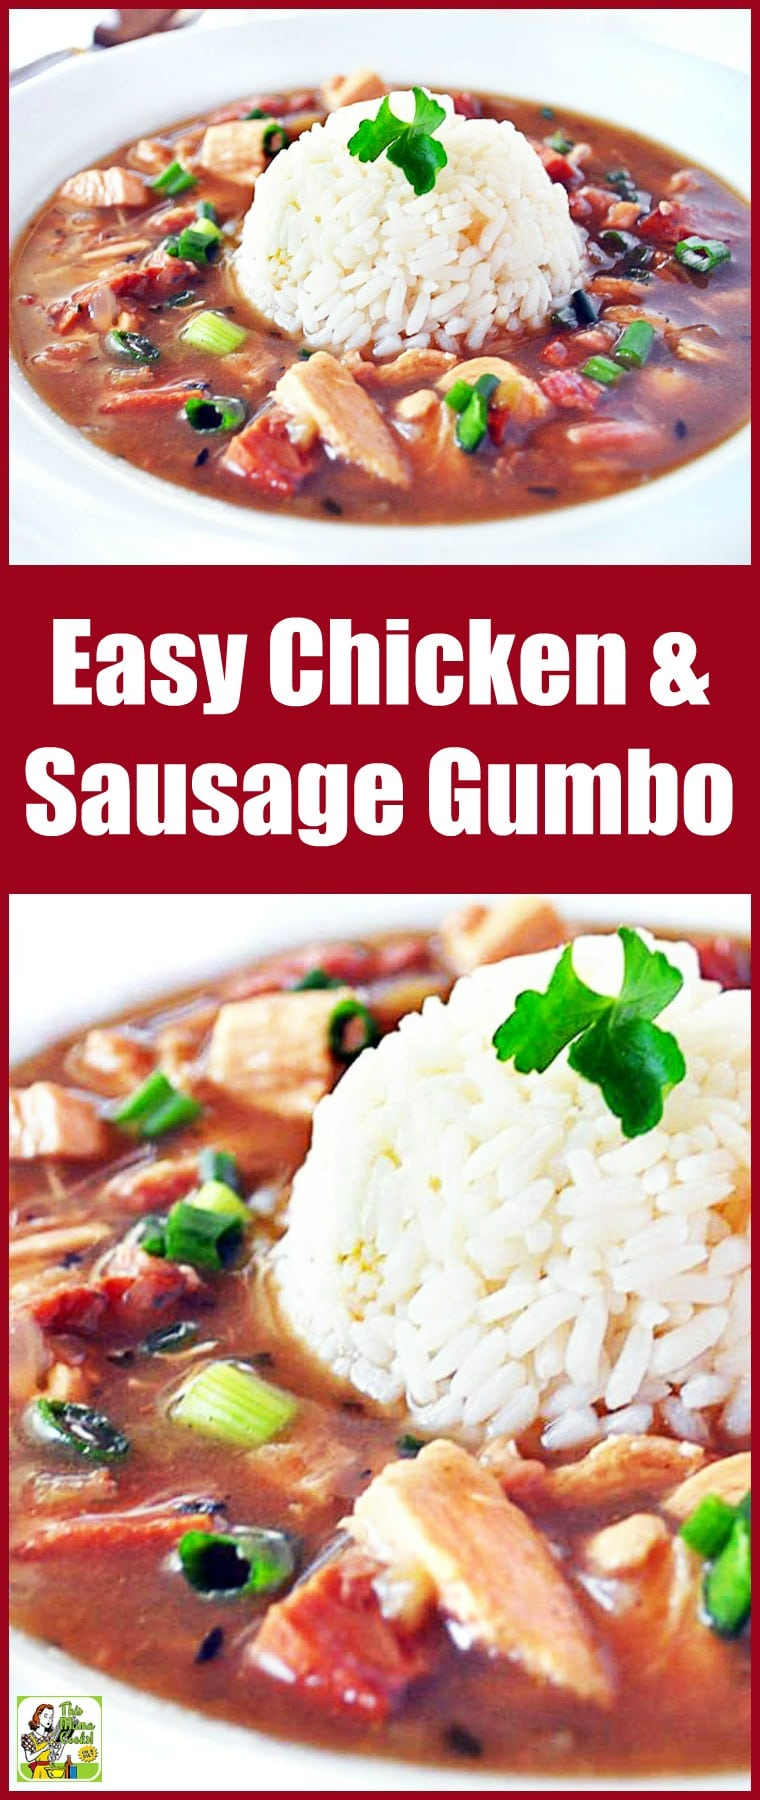 Looking for an Easy Chicken and Sausage Gumbo Recipe that\'s also healthy? Click to try this healthy chicken and sausage gumbo recipe. Comes with a gluten free option. #recipes #easy #recipeoftheday #healthyrecipes #glutenfree #easyrecipes #gumbo #soup #souprecipes #chicken #chickenrecipes #sausage #sausagerecipes